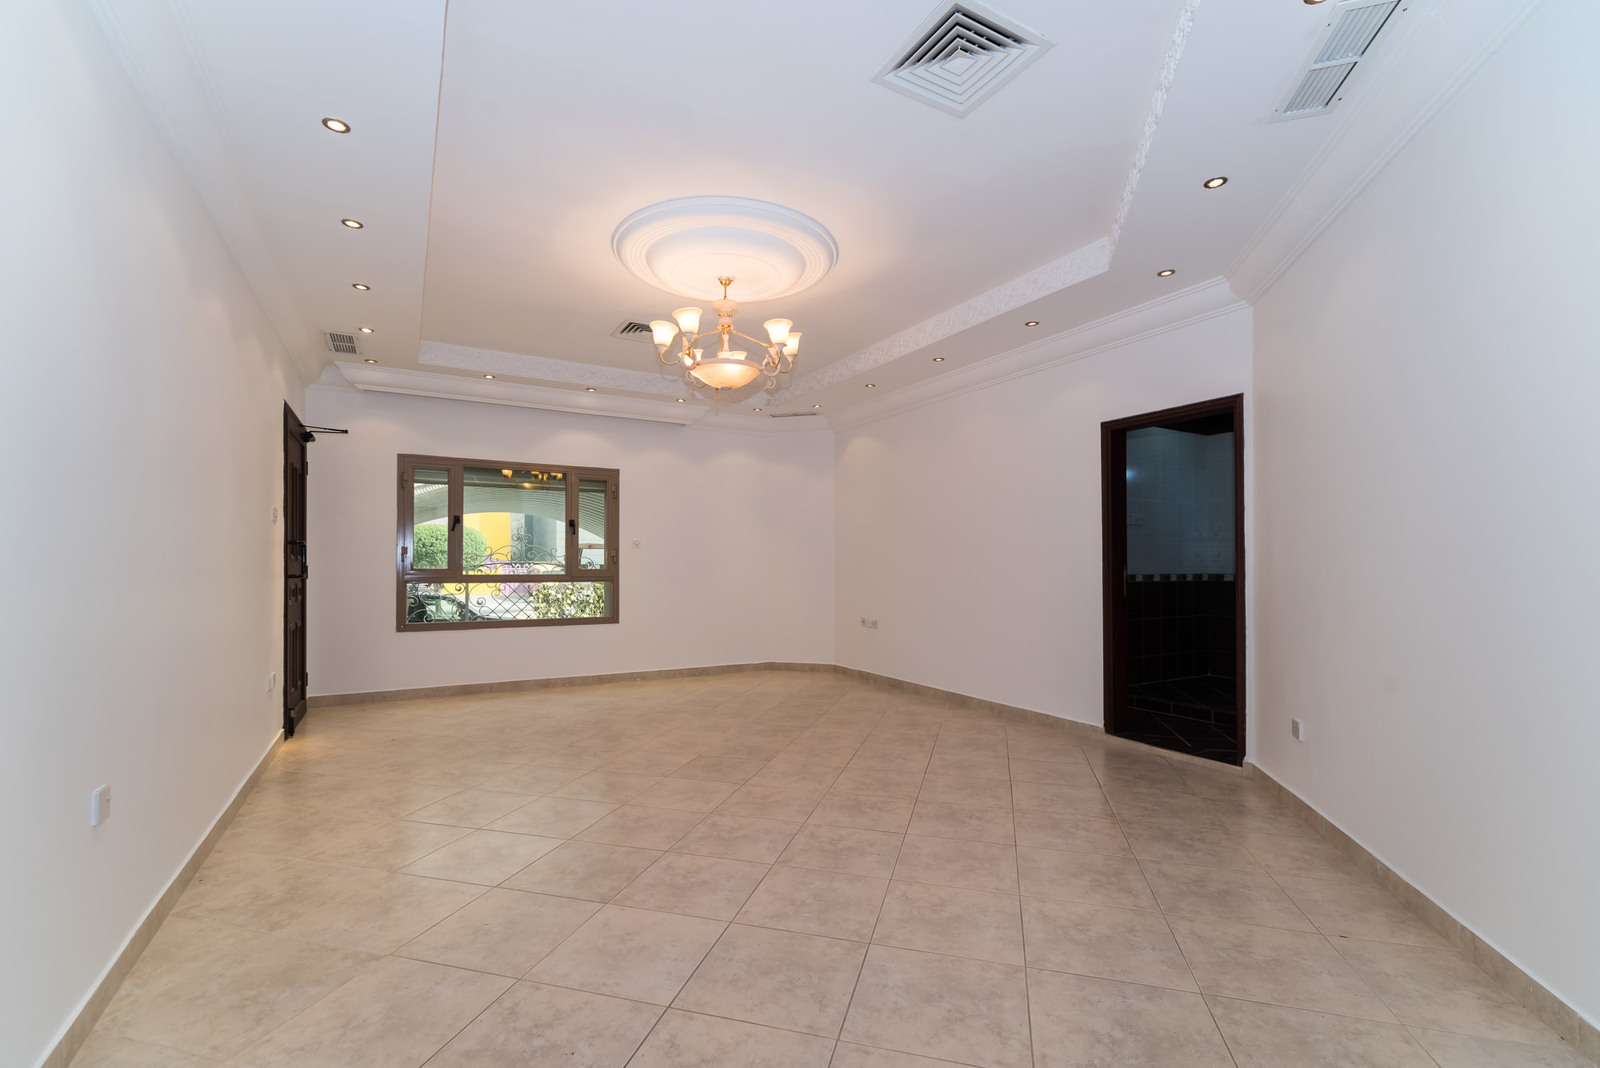 Salwa – older, rennovated, five bedroom ground floor w/yard